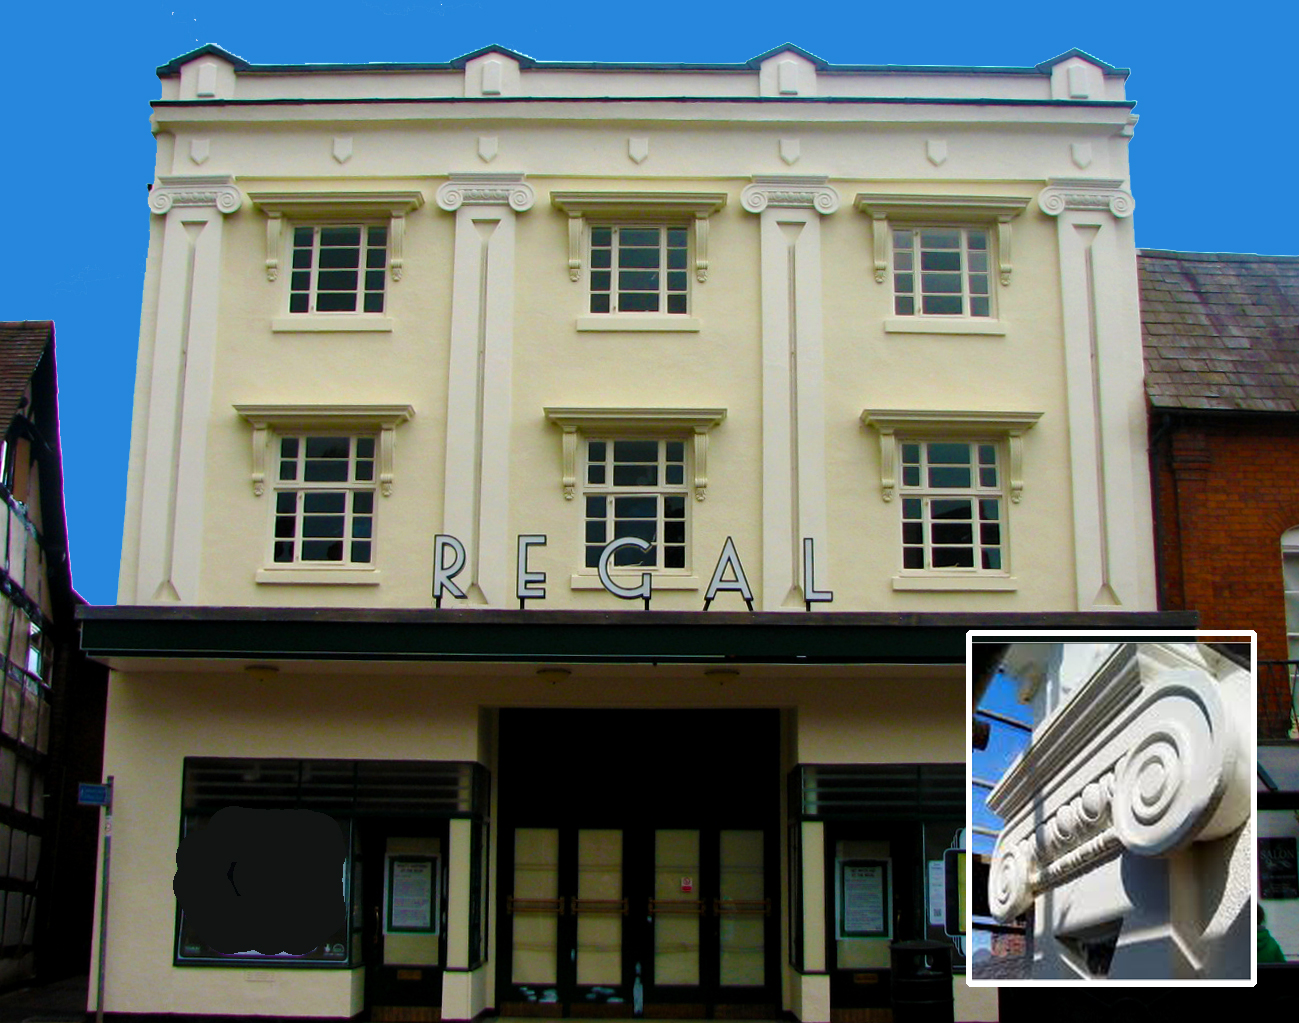 Classical Restoration of The Regal Cinema